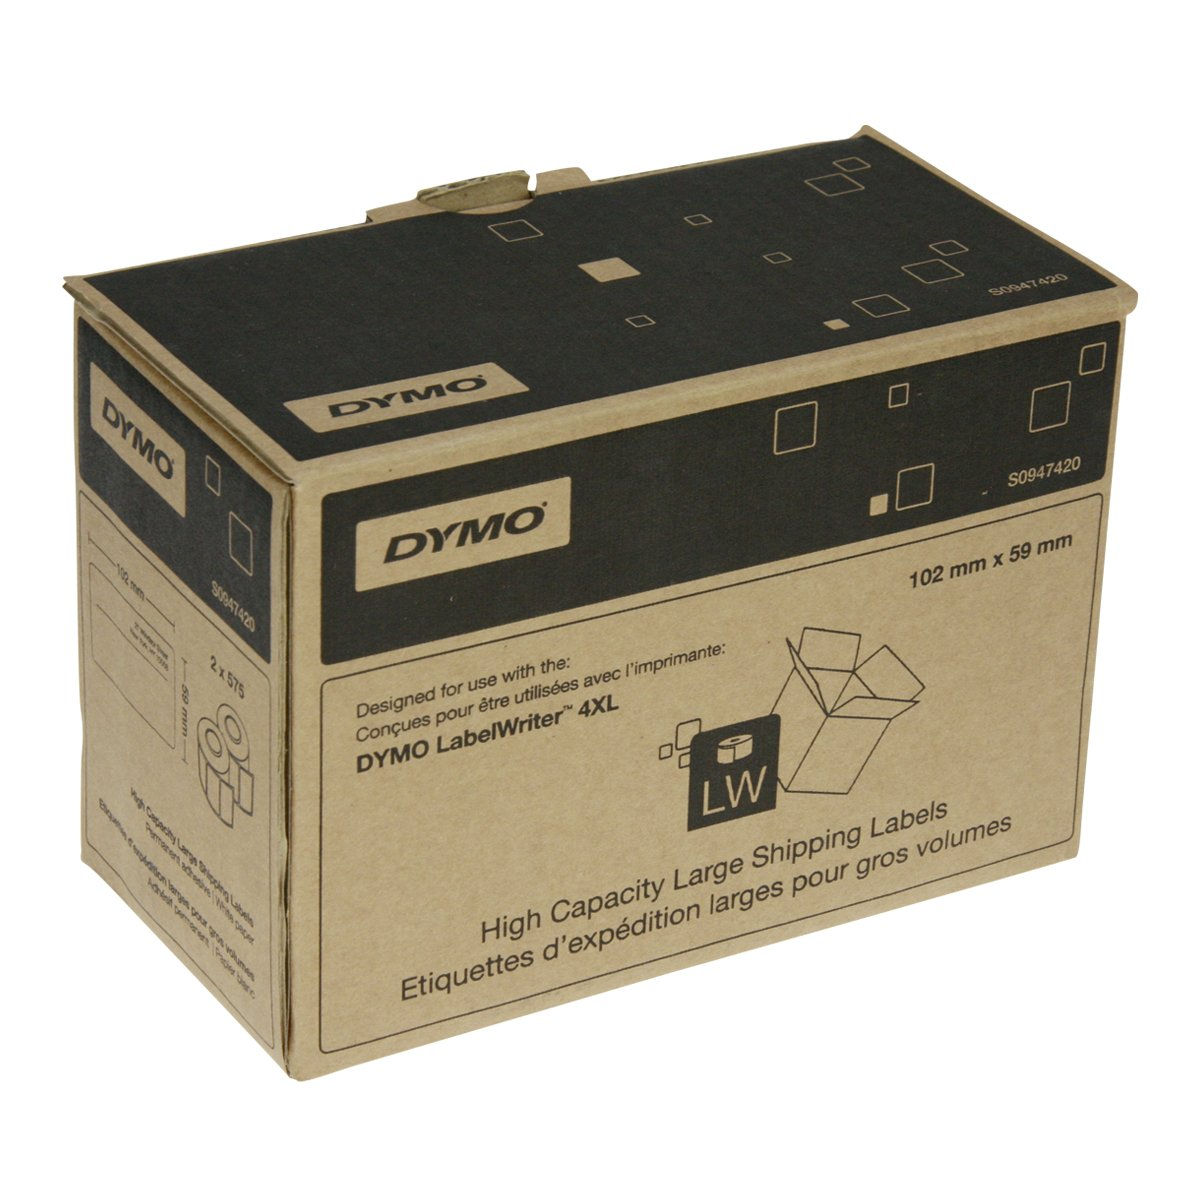 Dymo S0947420 LabelWriter 4XL High Capacity Large Shipping Labels – Large Mailing Labels